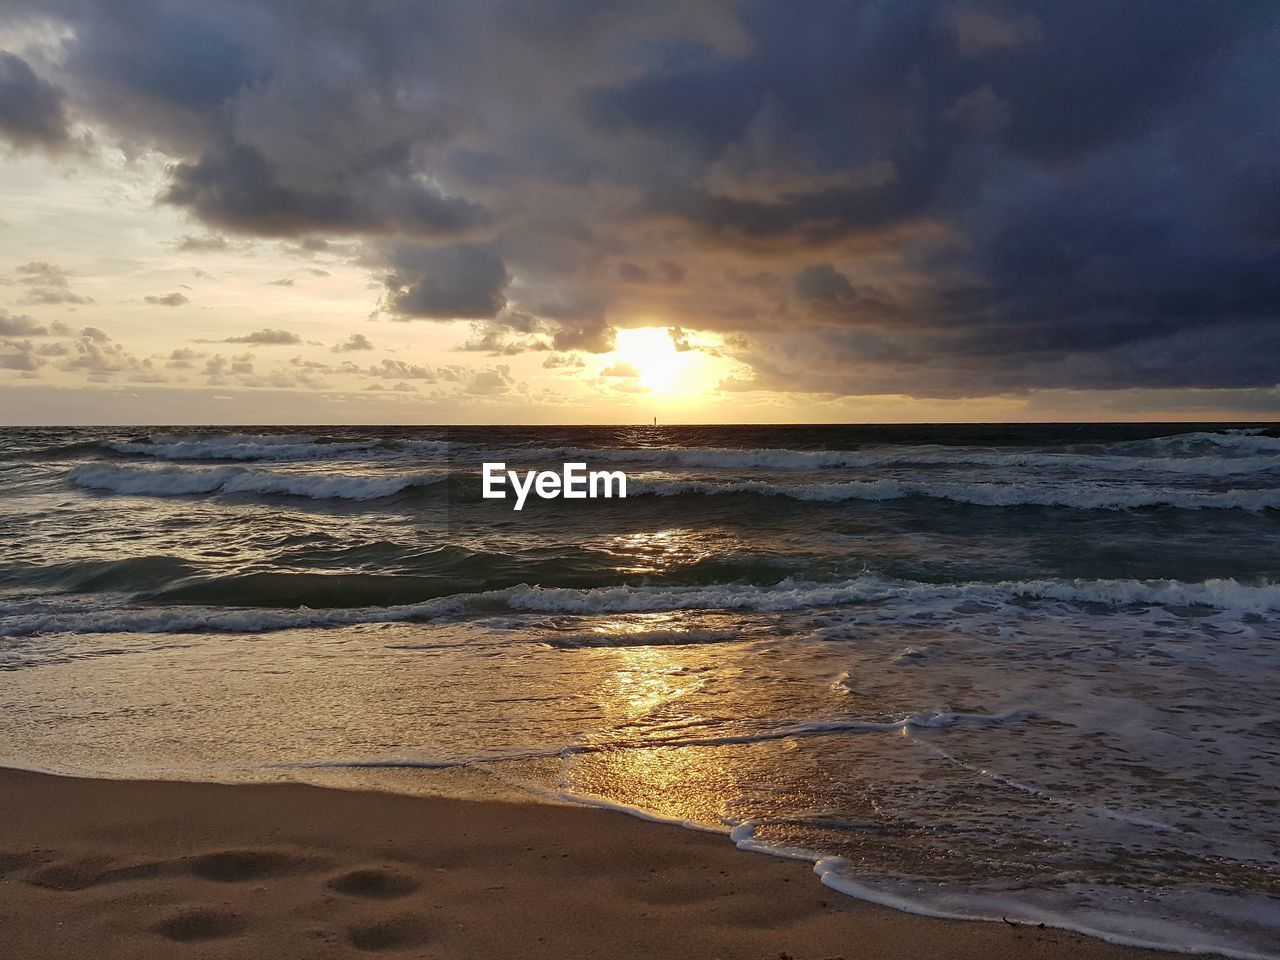 sea, sky, sunset, water, beach, beauty in nature, cloud - sky, land, scenics - nature, horizon, horizon over water, wave, idyllic, motion, tranquility, nature, tranquil scene, no people, sand, outdoors